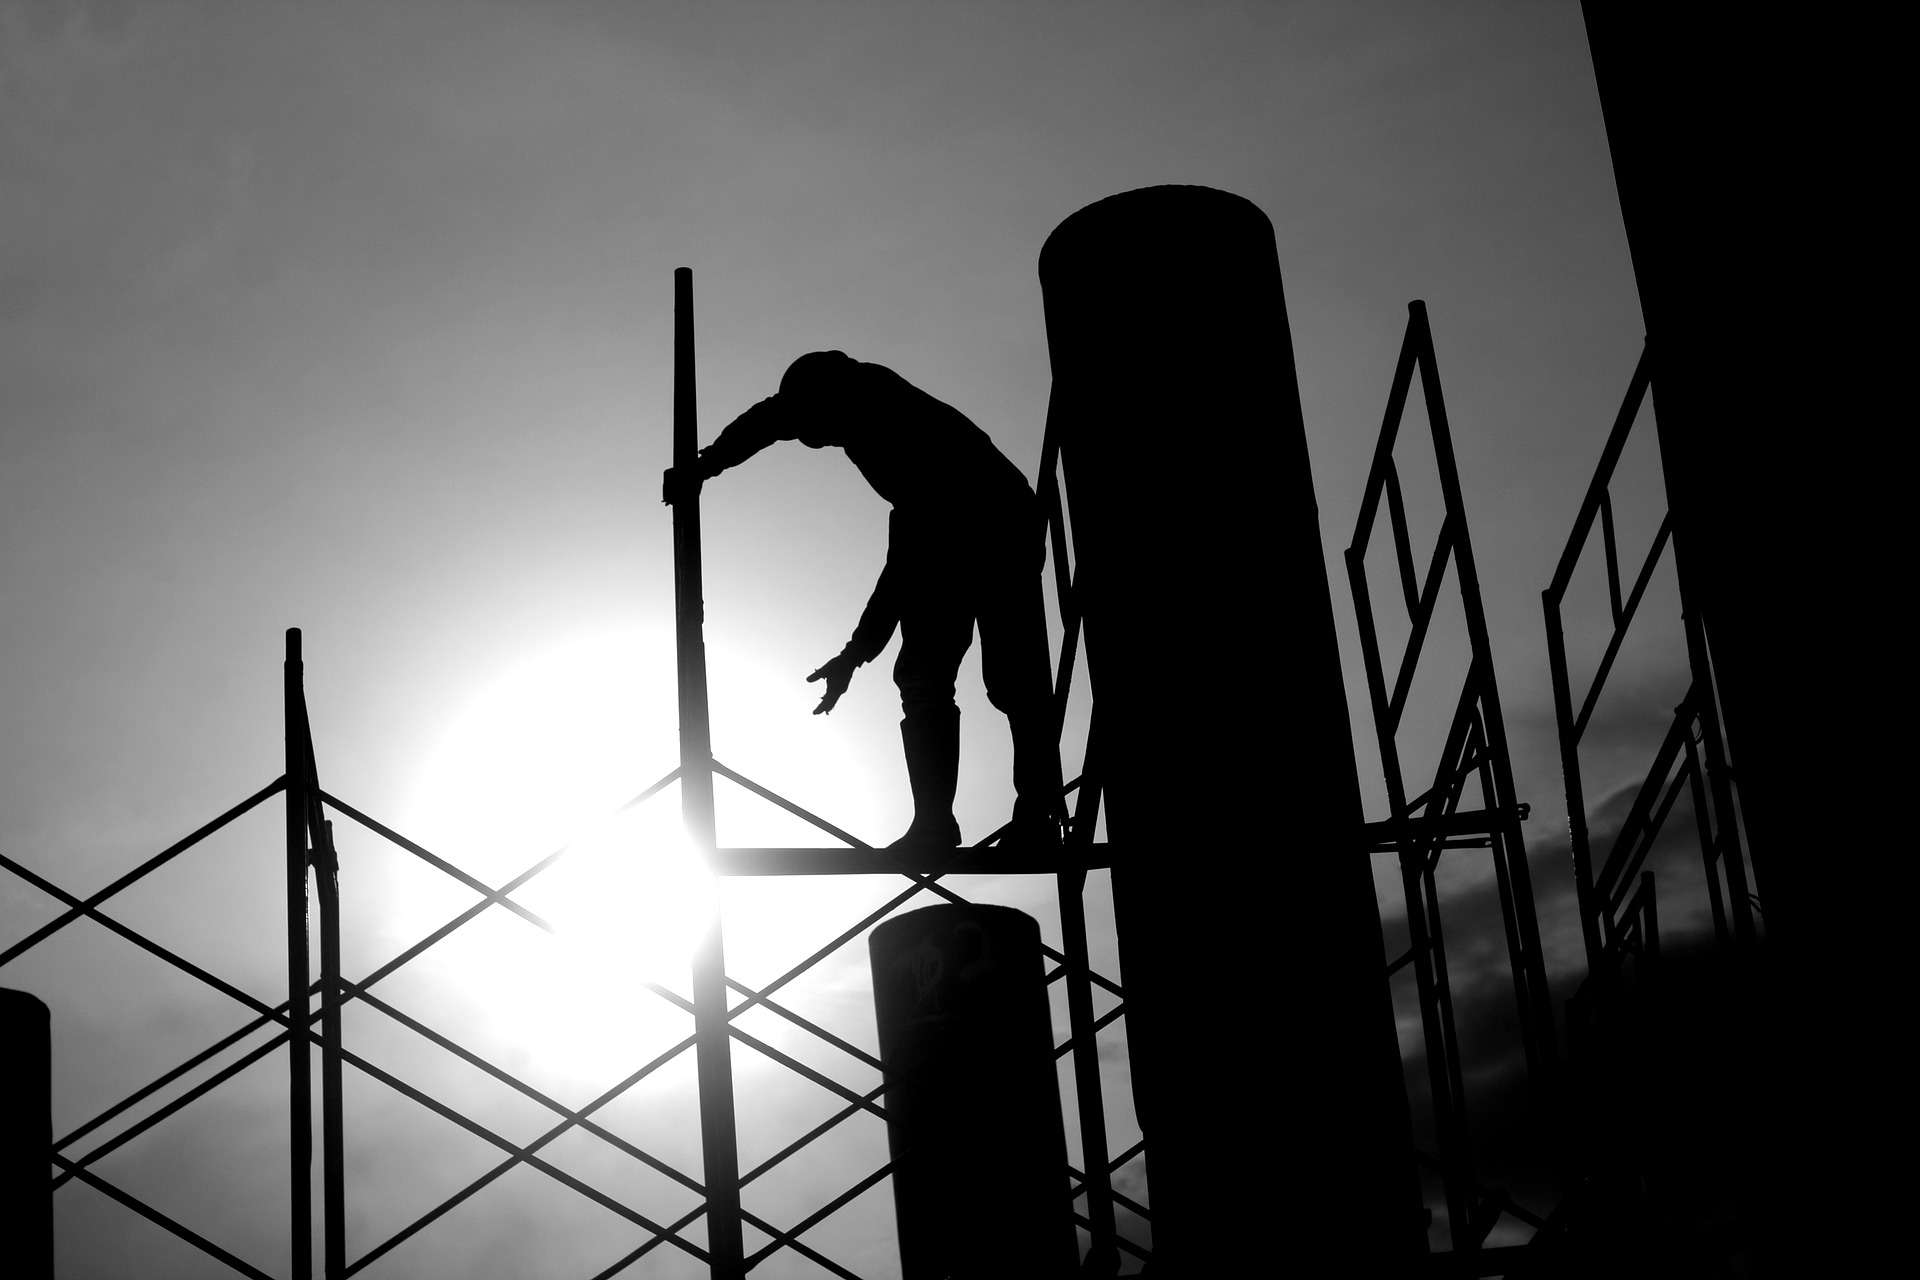 Silhouette of a Flanagan builder on scaffolding